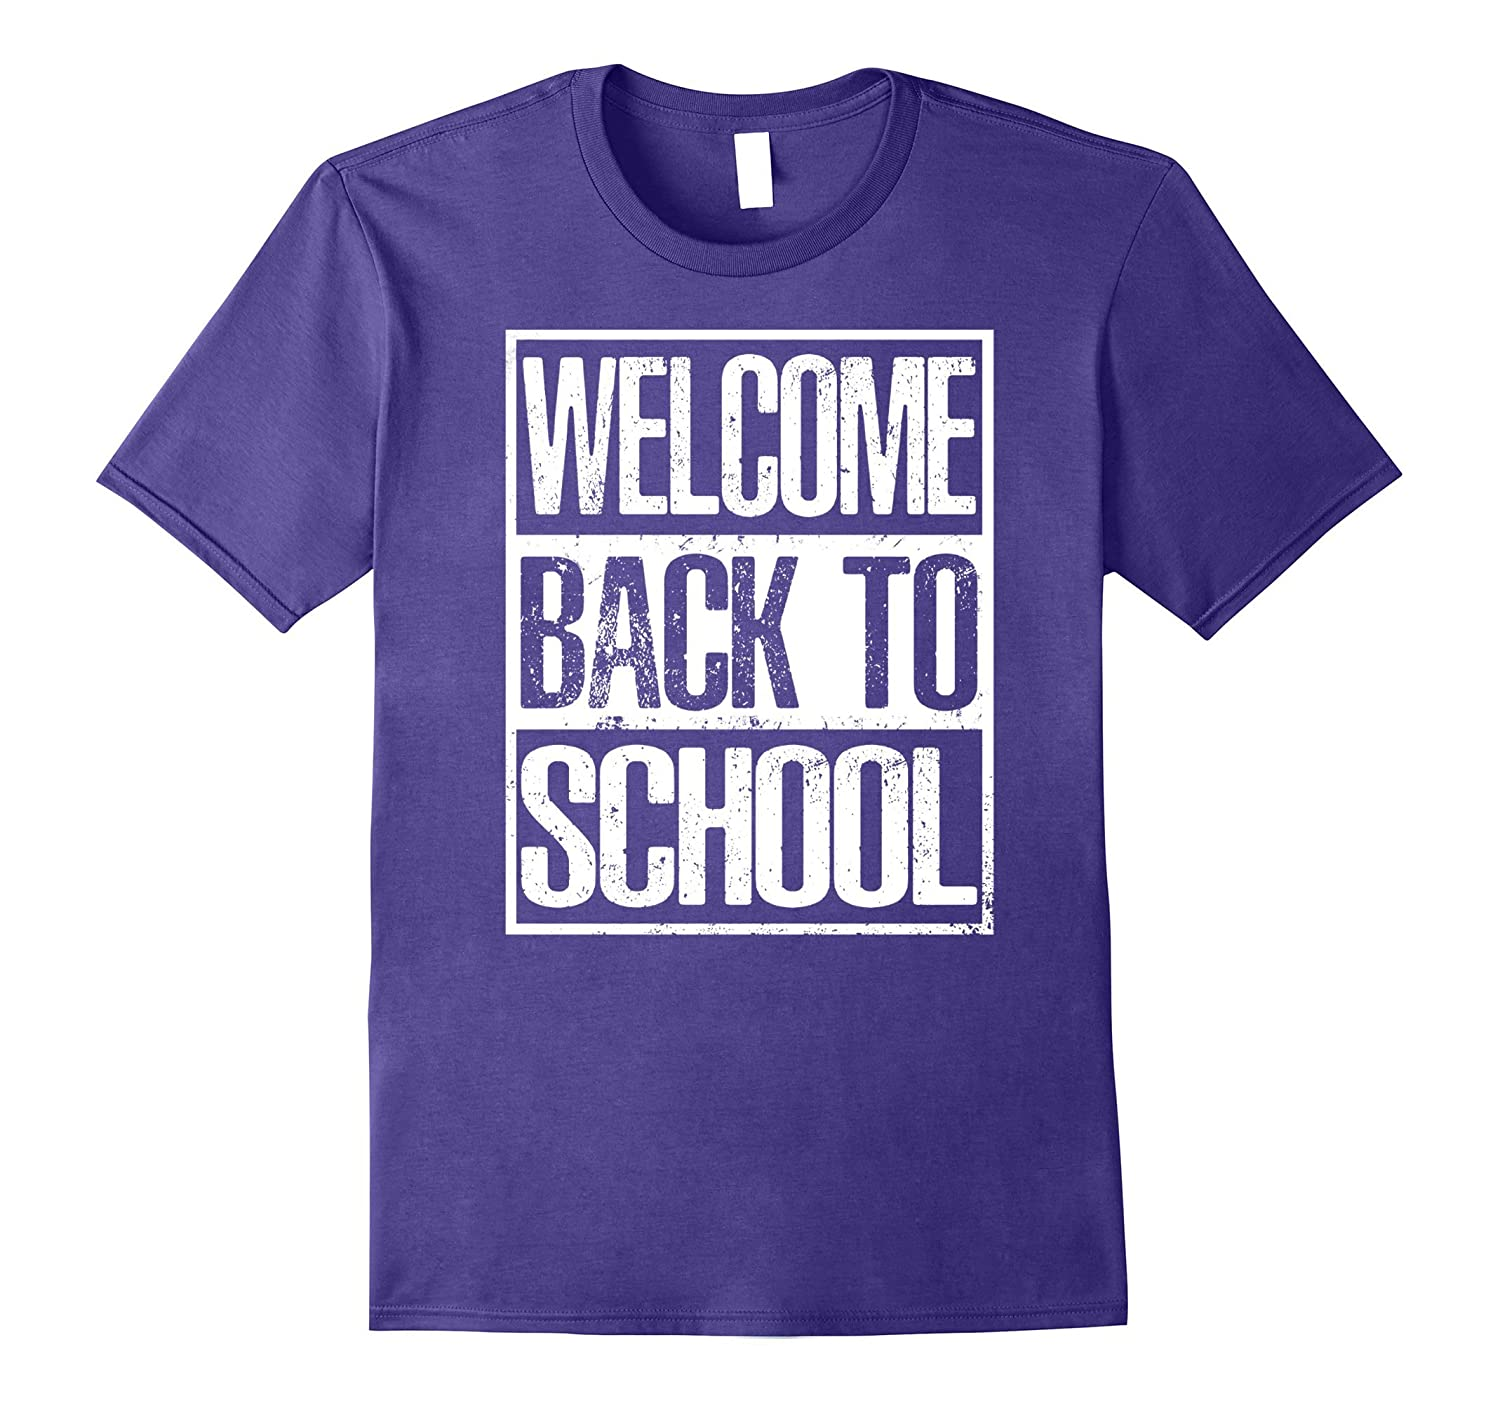 Welcome Back to School T Shirt - Tee for Teachers & Students-TH